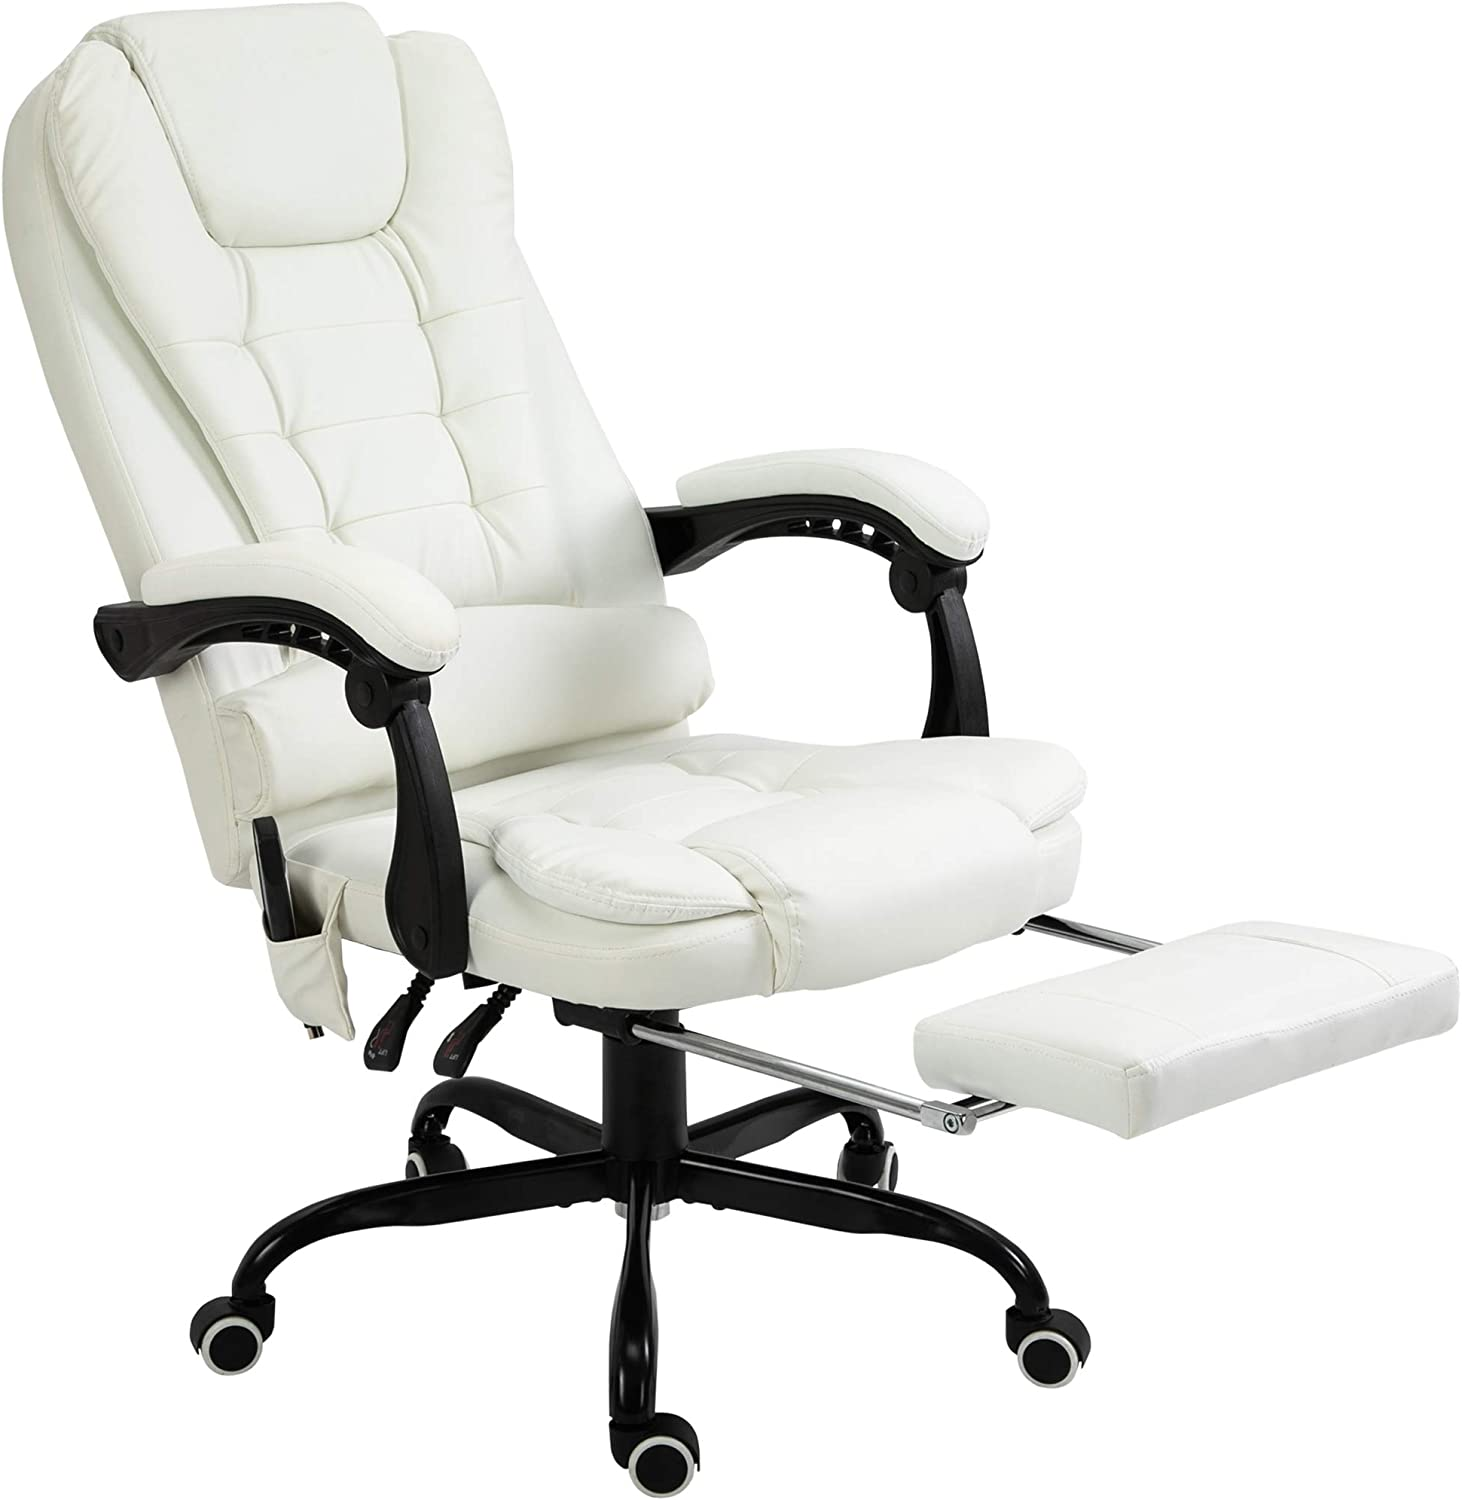 Vinsetto High Back Massage Office Chair with 7-Point Vibration Heating Function Reclining Back and Adjustable Height with Lumbar Support Headrest Footrest White